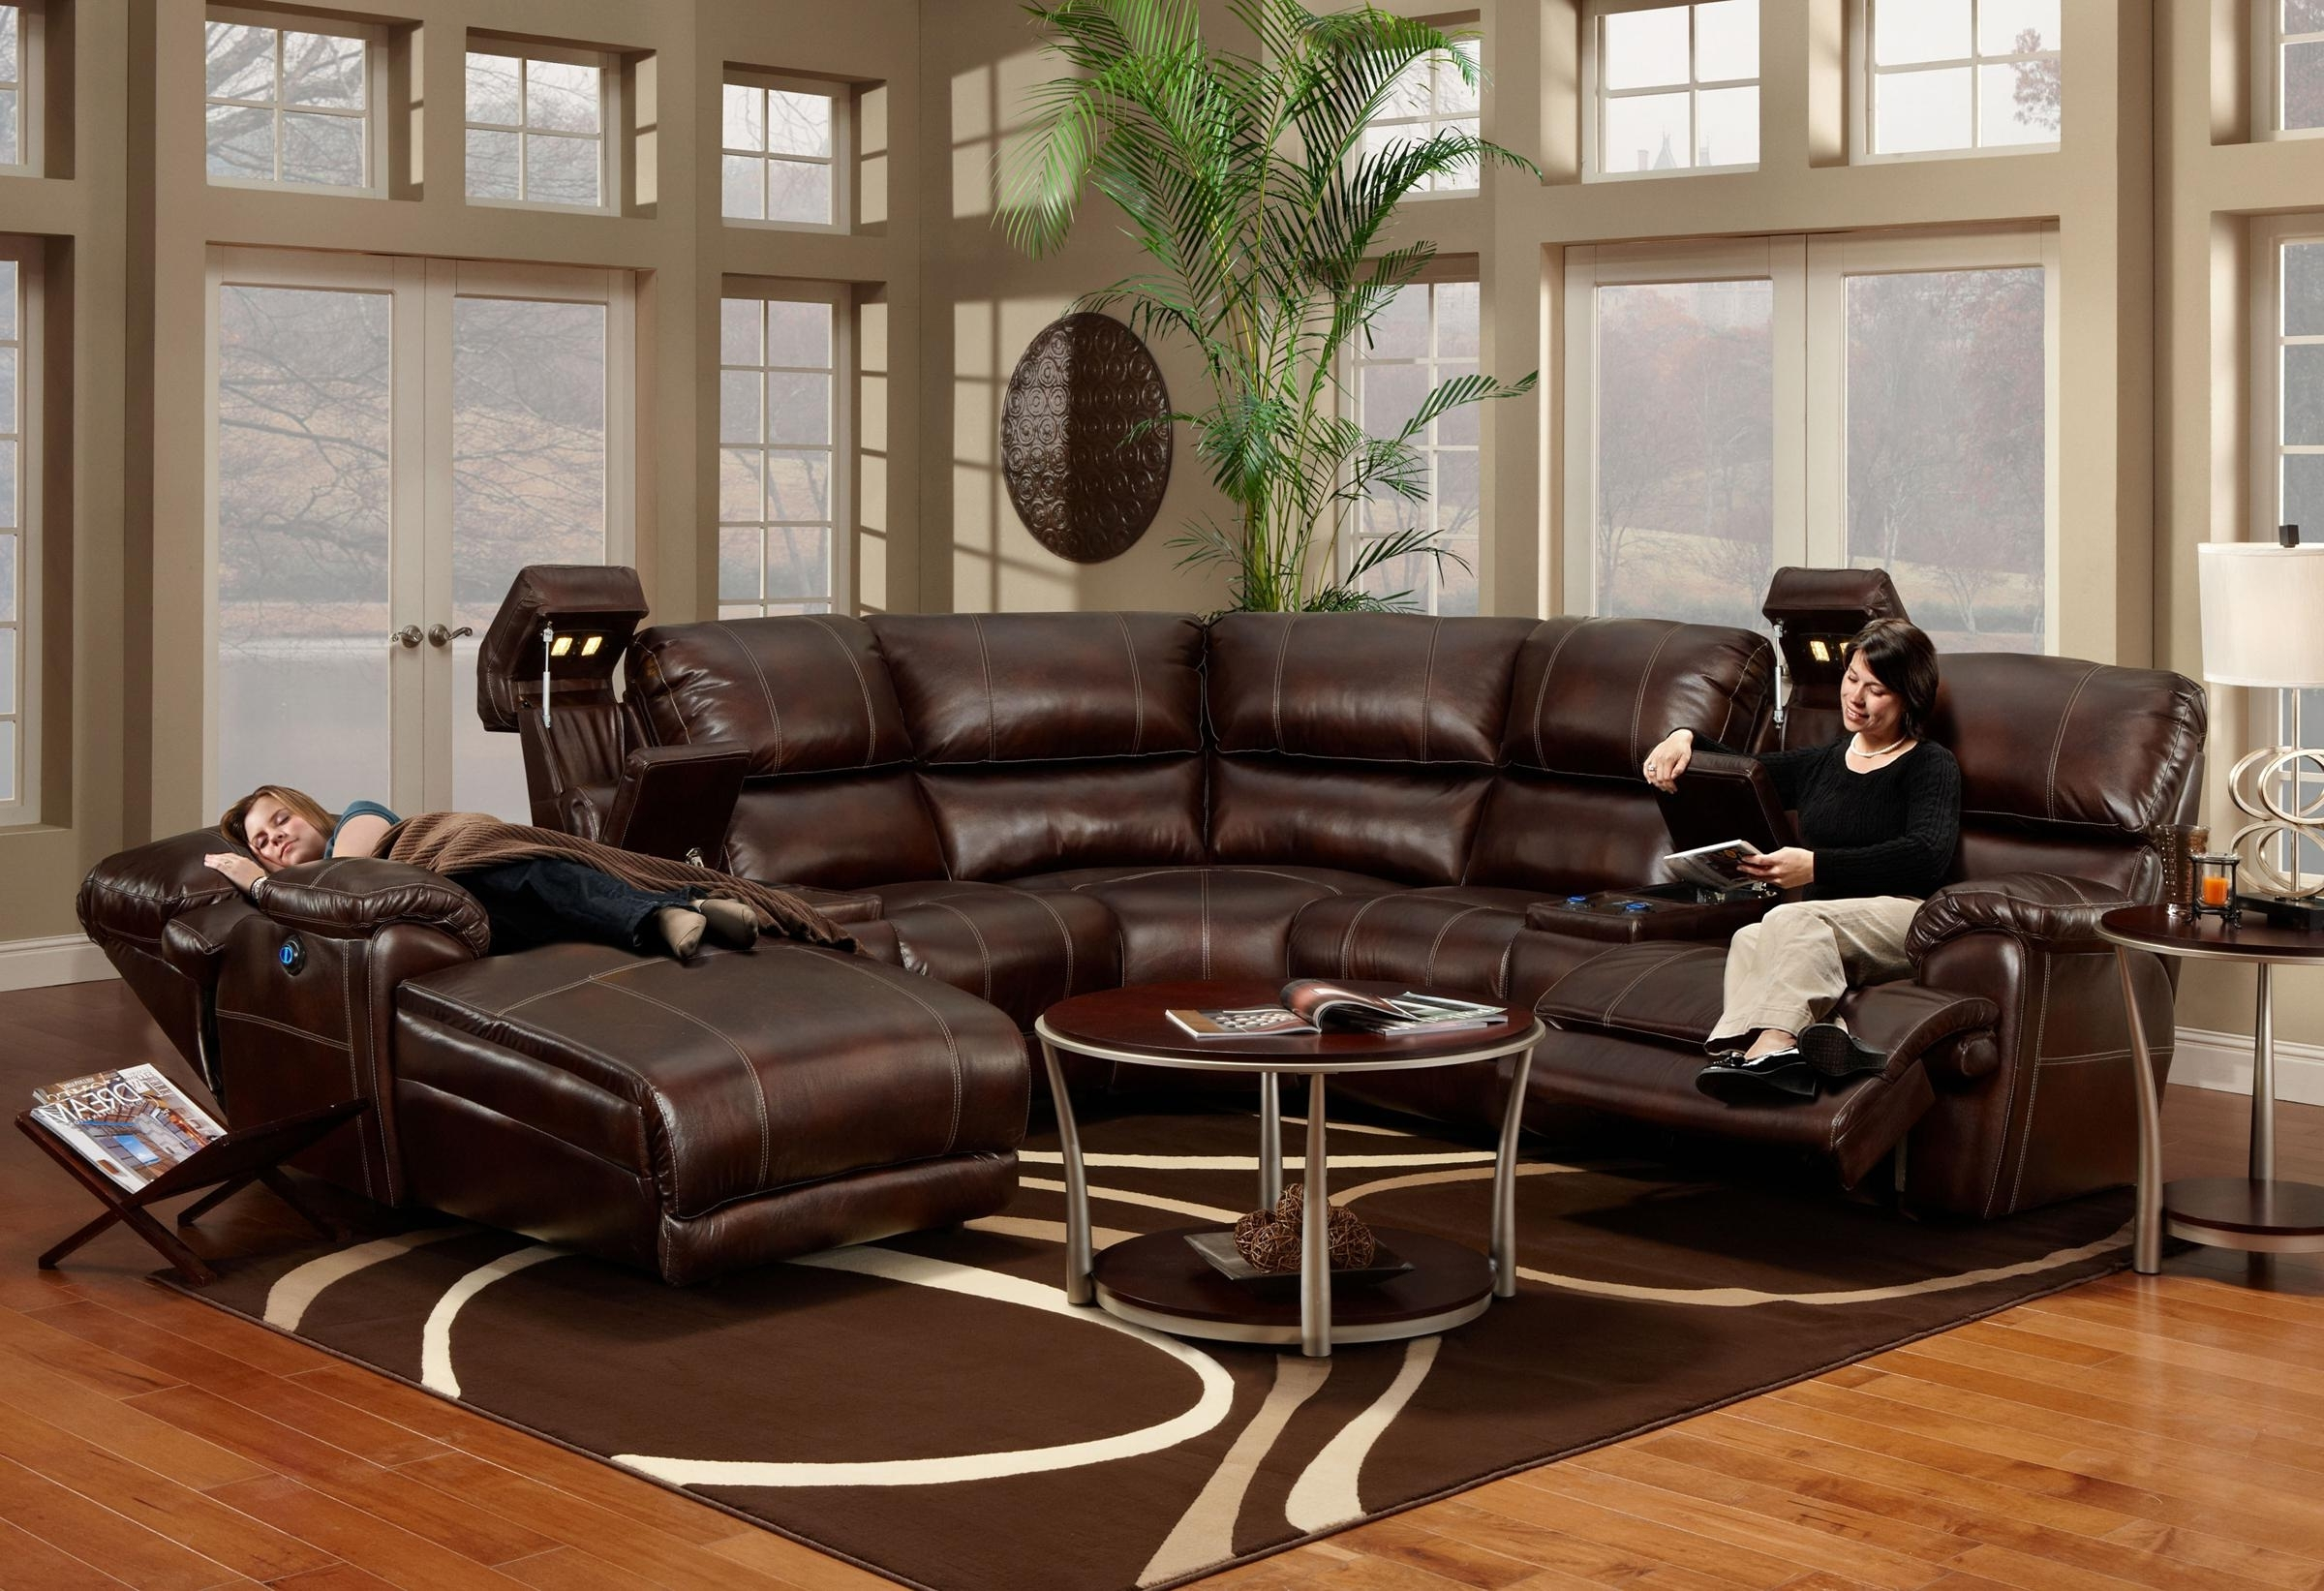 Franklin 572 Reclining Sectional Sofa With Chaise – Ahfa – Sofa Inside Trendy St Cloud Mn Sectional Sofas (View 4 of 20)